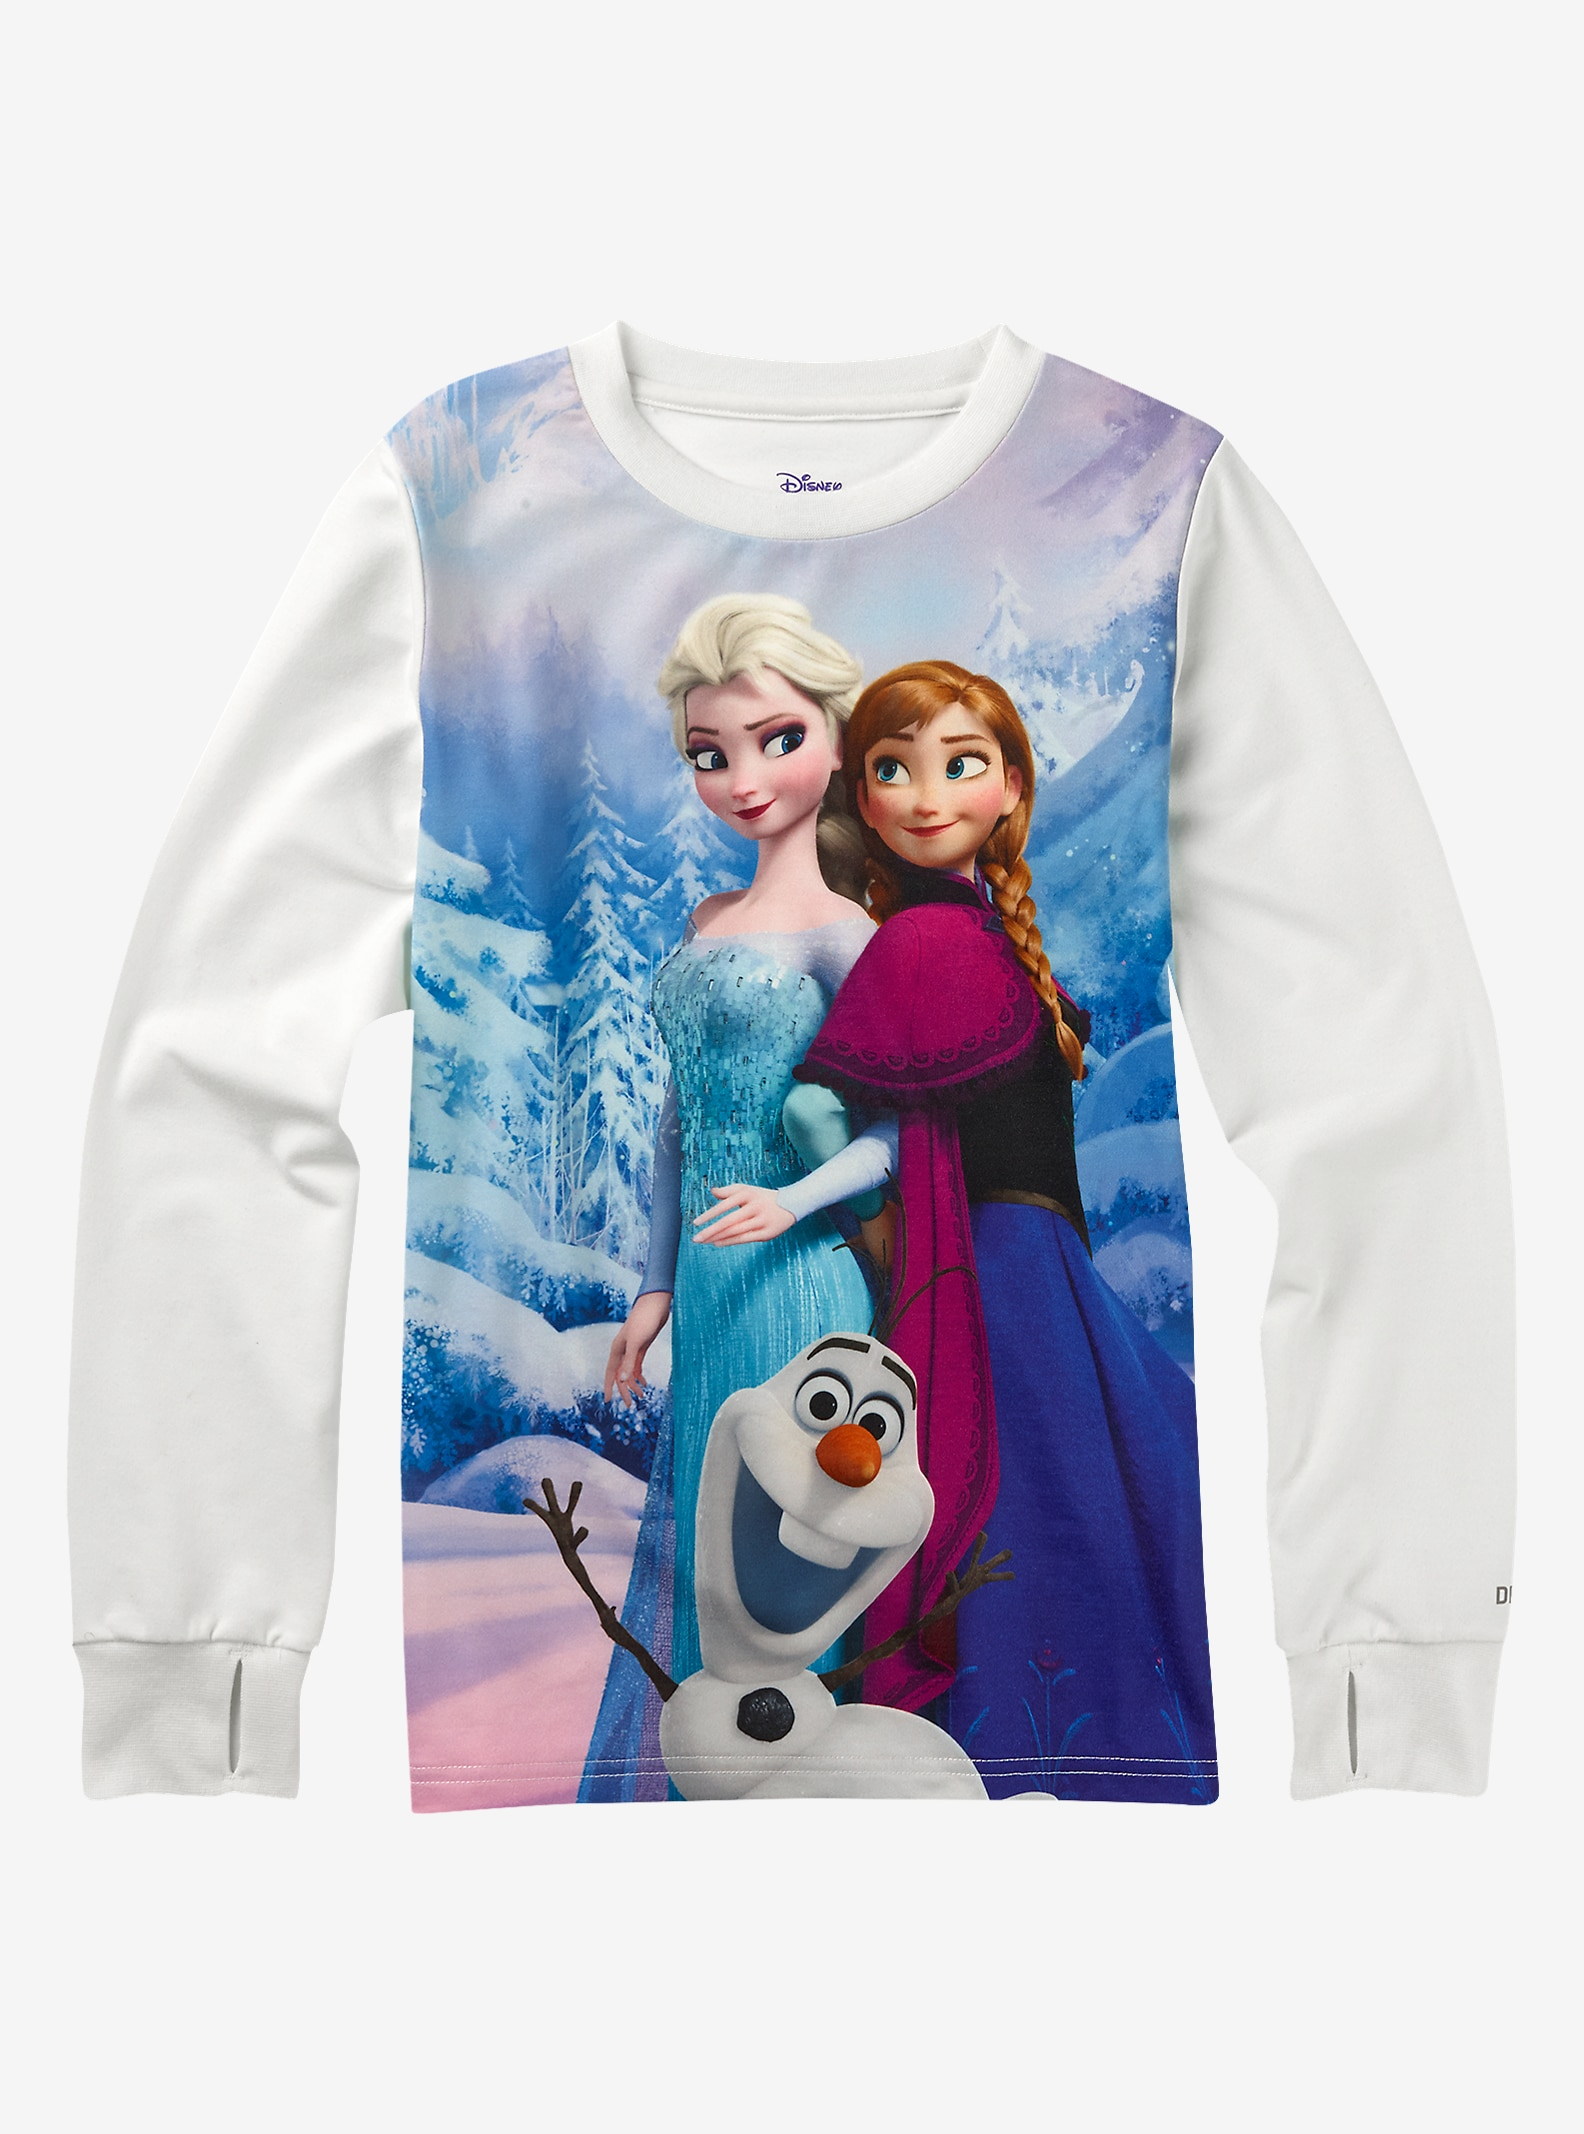 Disney Frozen Kids' Tech Tee shown in Frozen © Disney